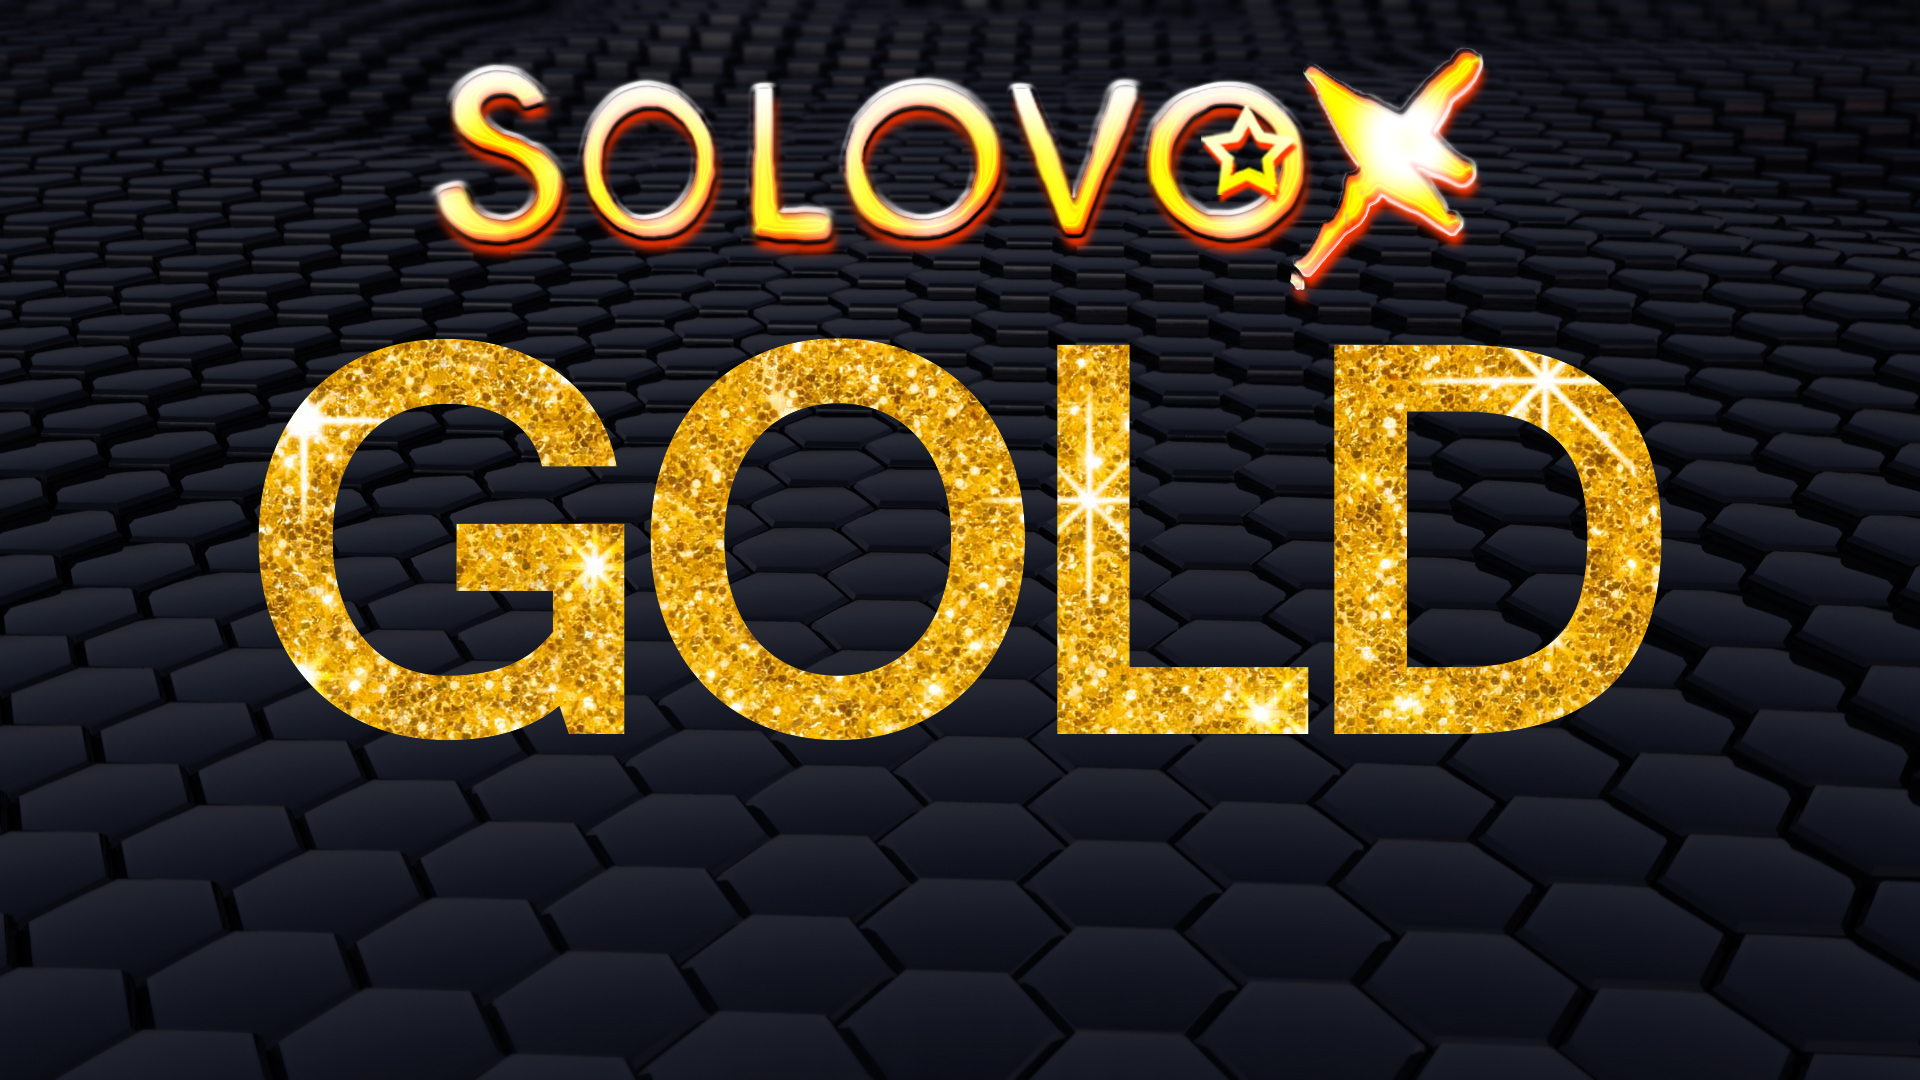 Gold_Solovox